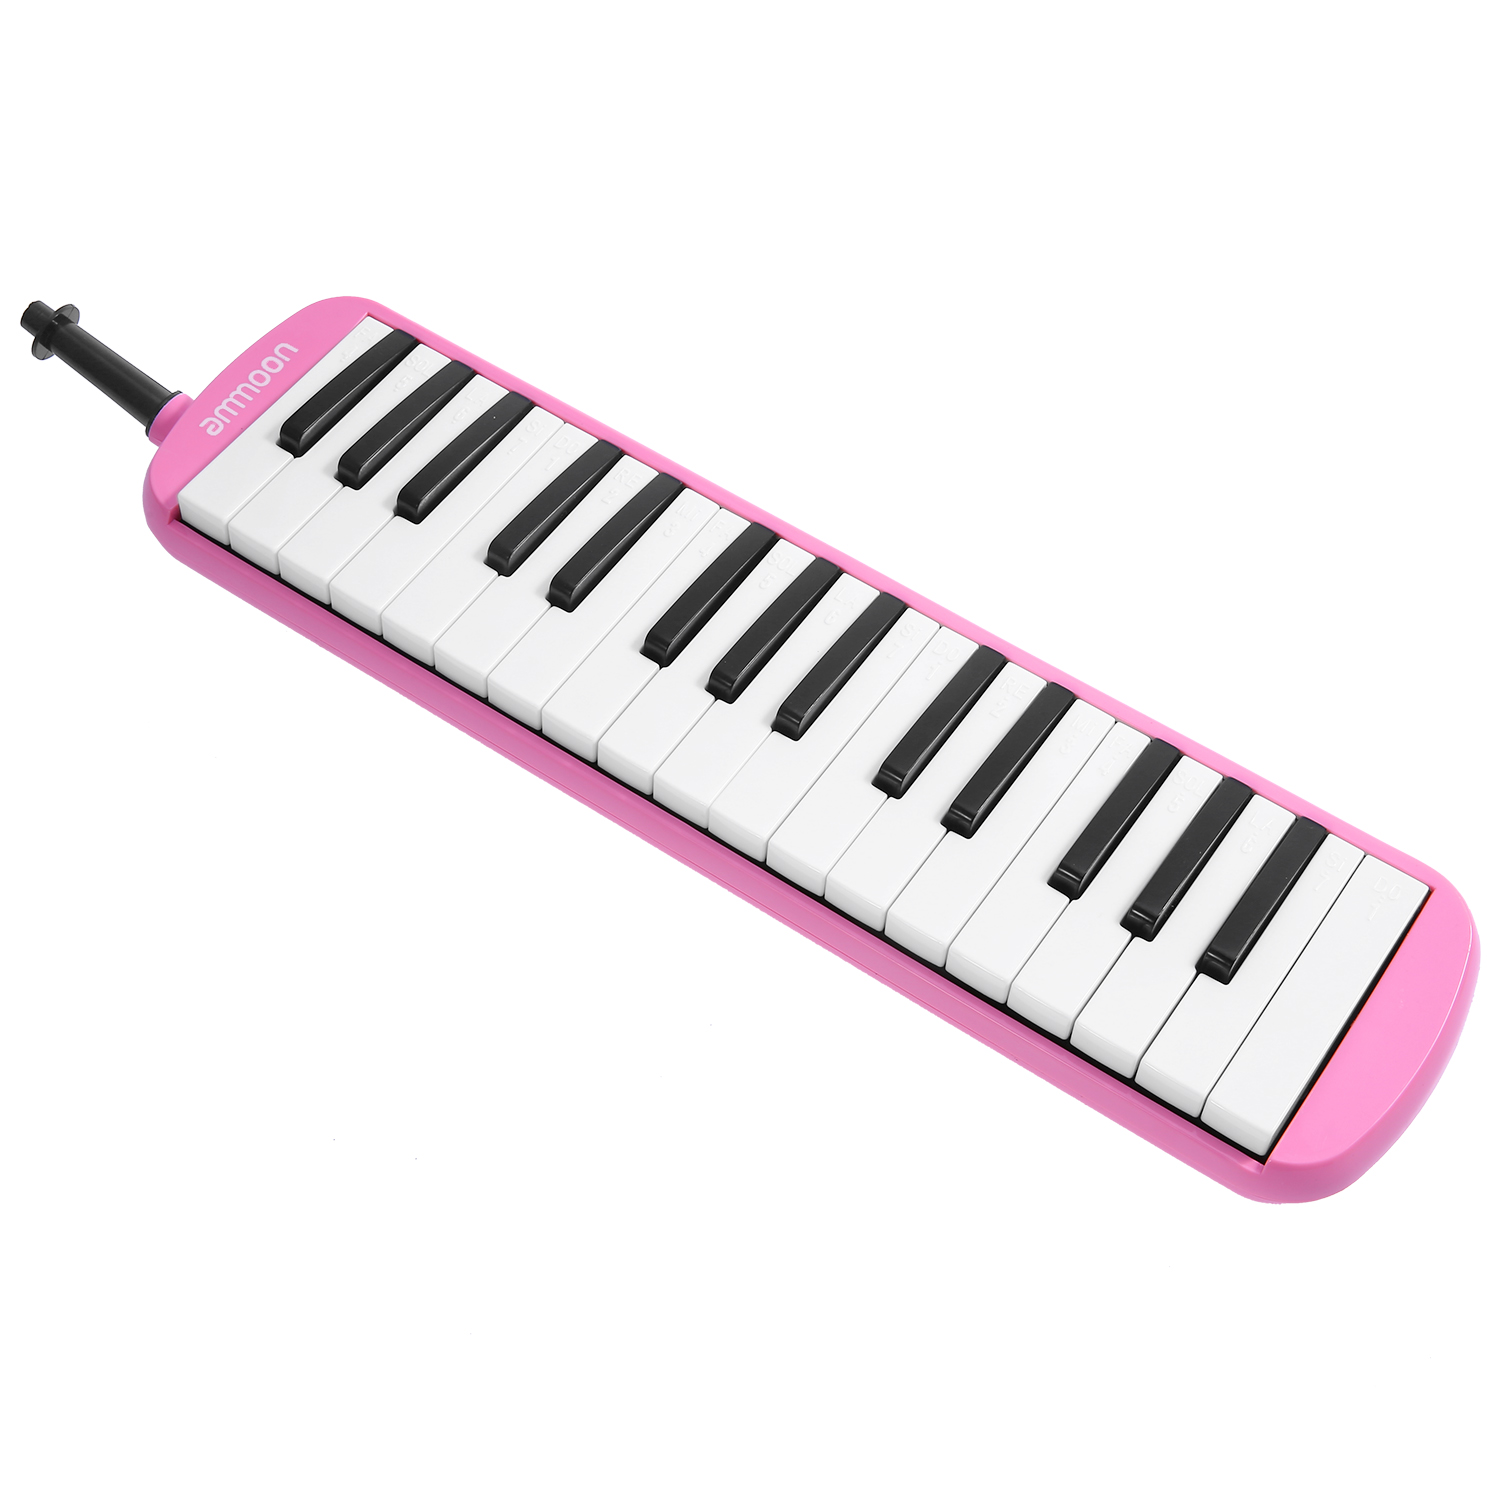 ammoon 32 Keys Melodica Pianica Piano Style Keyboard Harmonica Mouth Organ with Mouthpiece Cleaning Cloth Carry Case for Beginners Kids Musical Gift